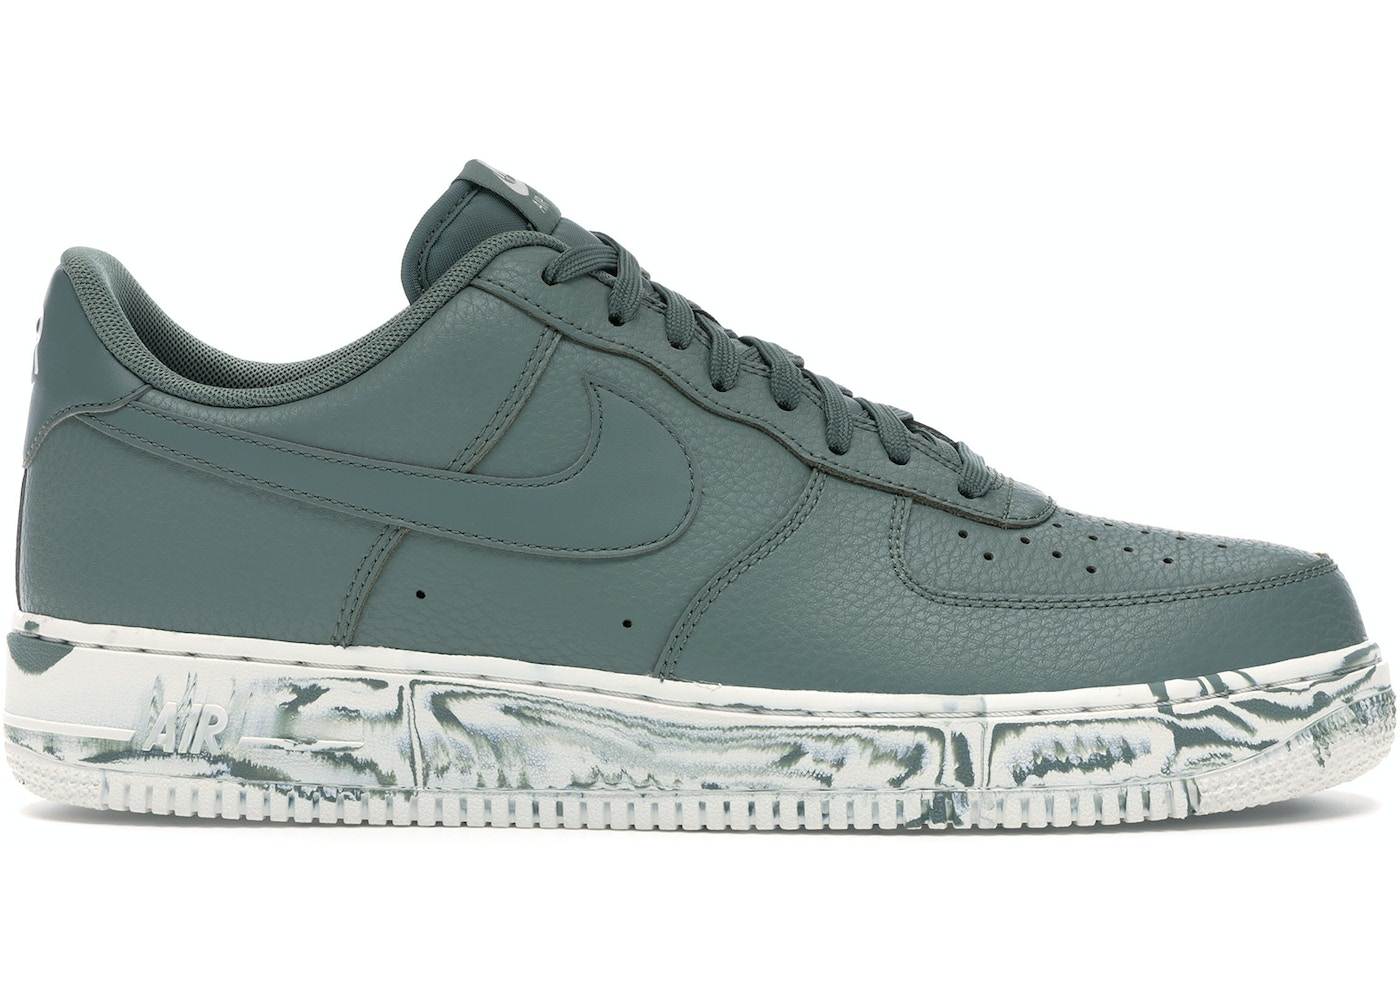 100% authentic f3228 063aa Air Force 1 Low Clay Green Marble